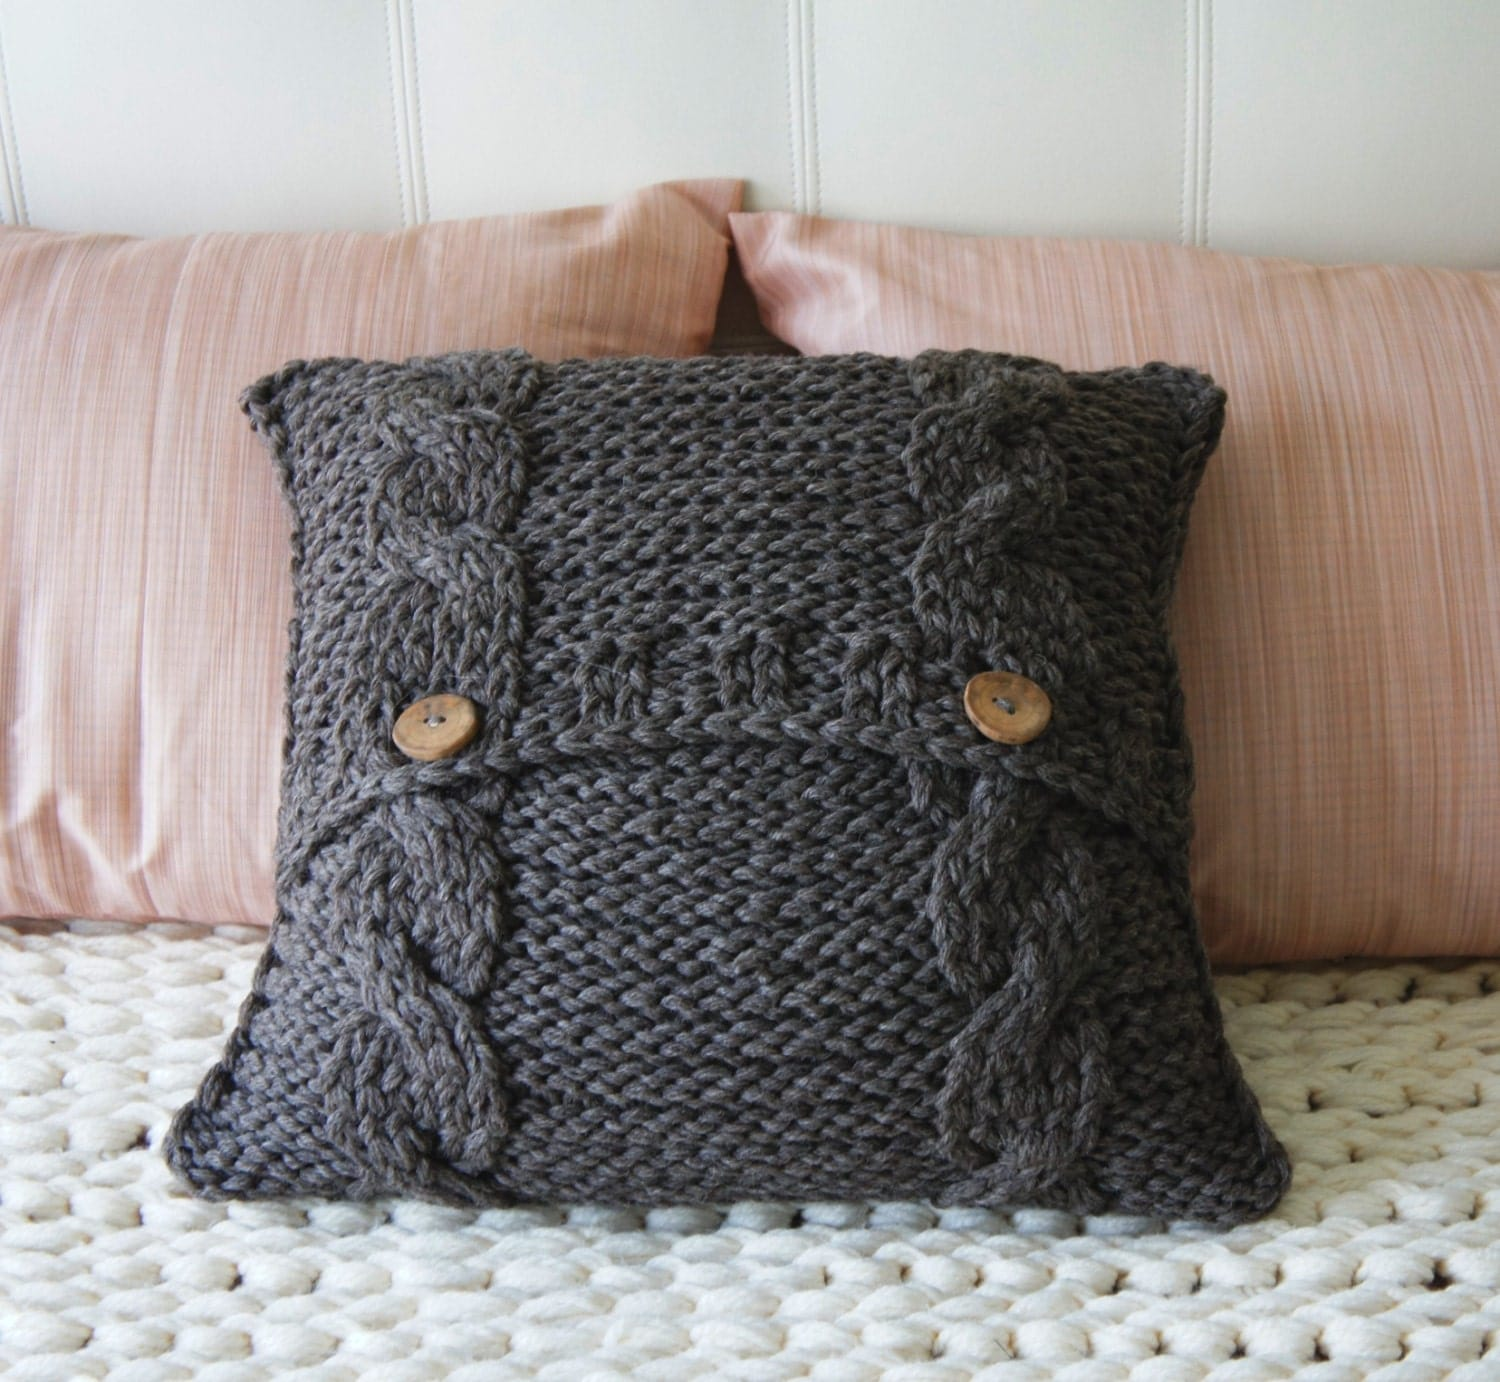 Knitting Pillow Cover : Cable knit pillow cover decorative